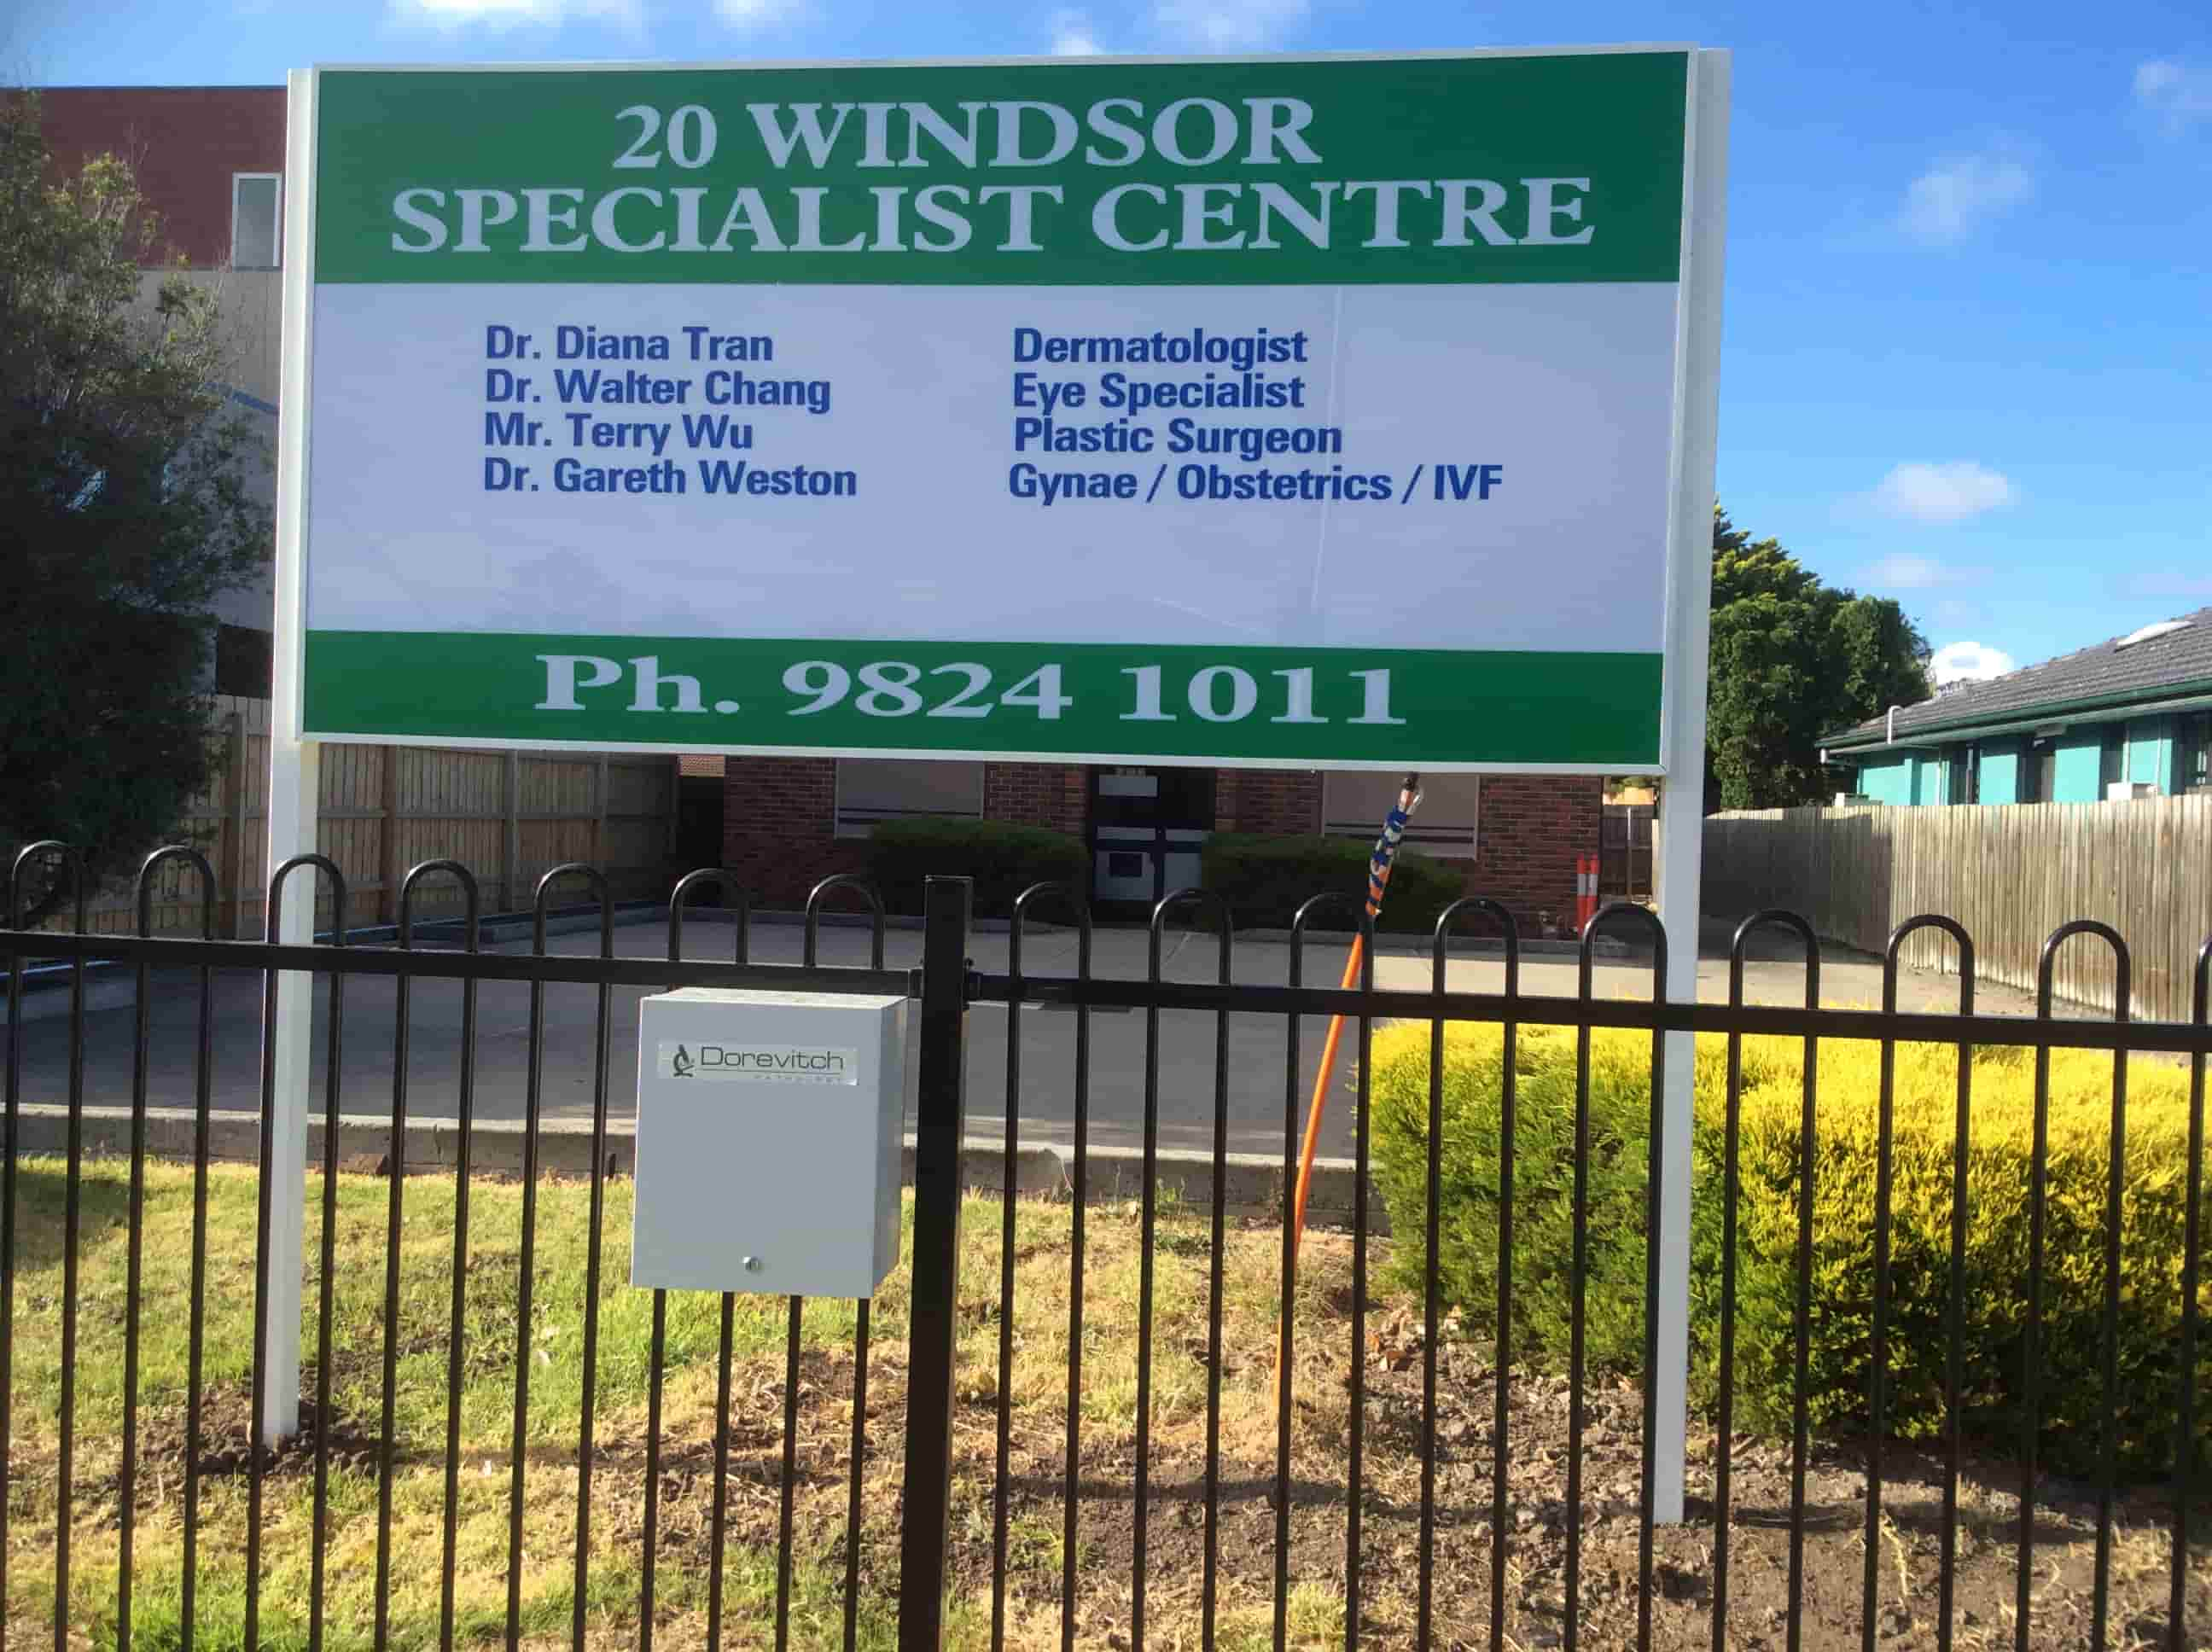 Garden Signs Melbourne specialist Center Windsor